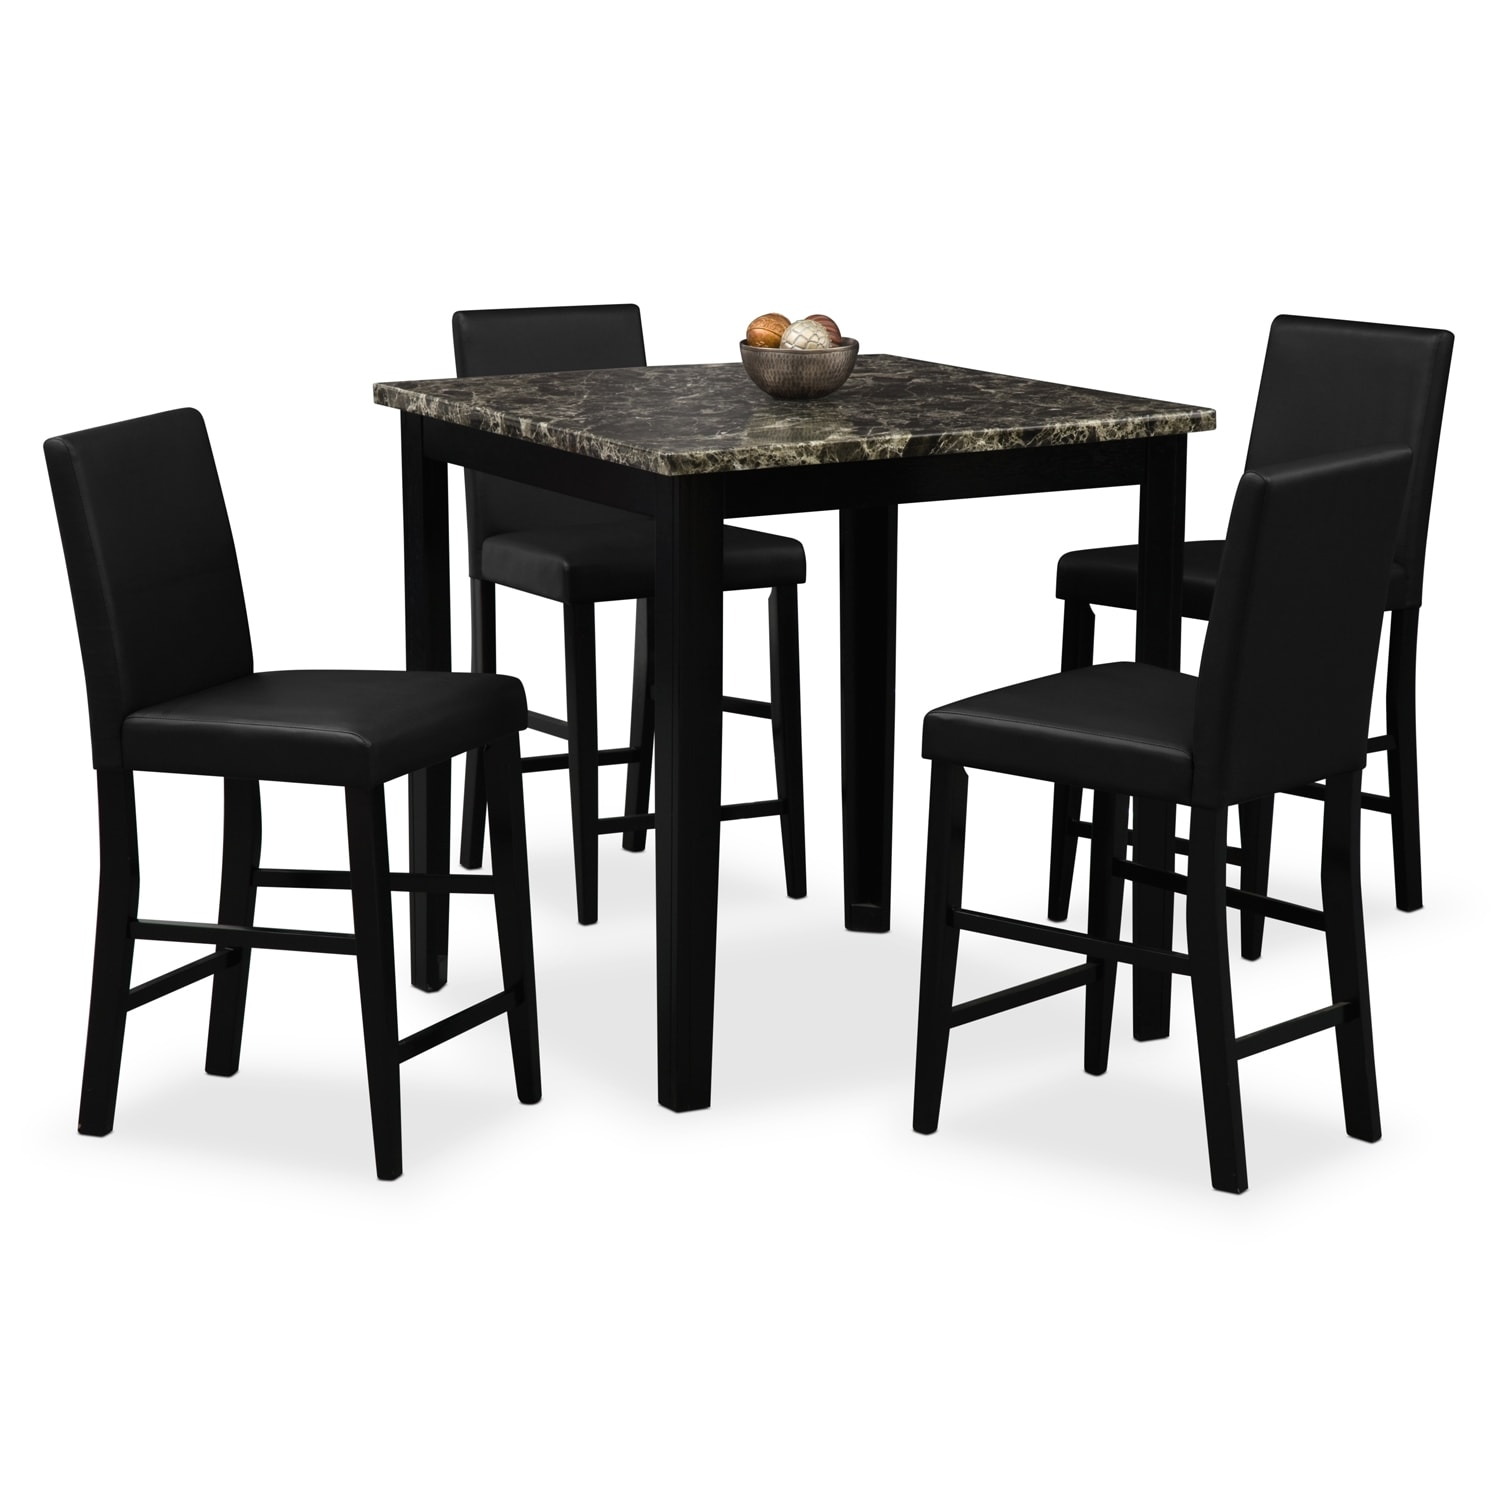 Shadow ii 5 pc counter height dinette value city furniture for Dinette furniture